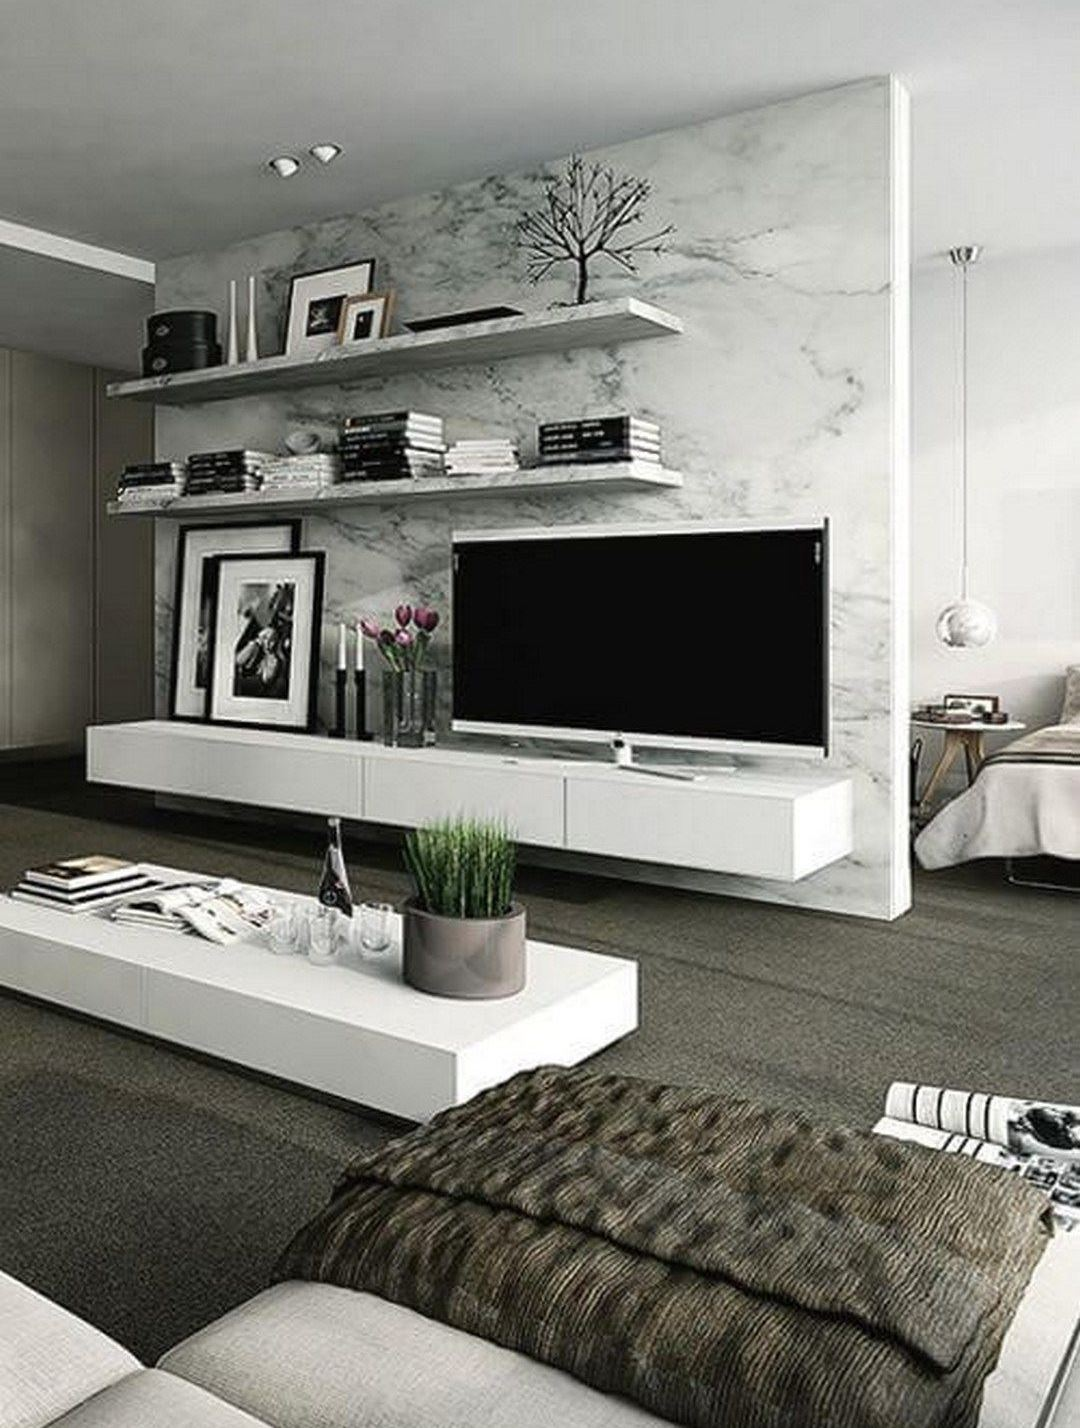 TV Wall Decor Idea